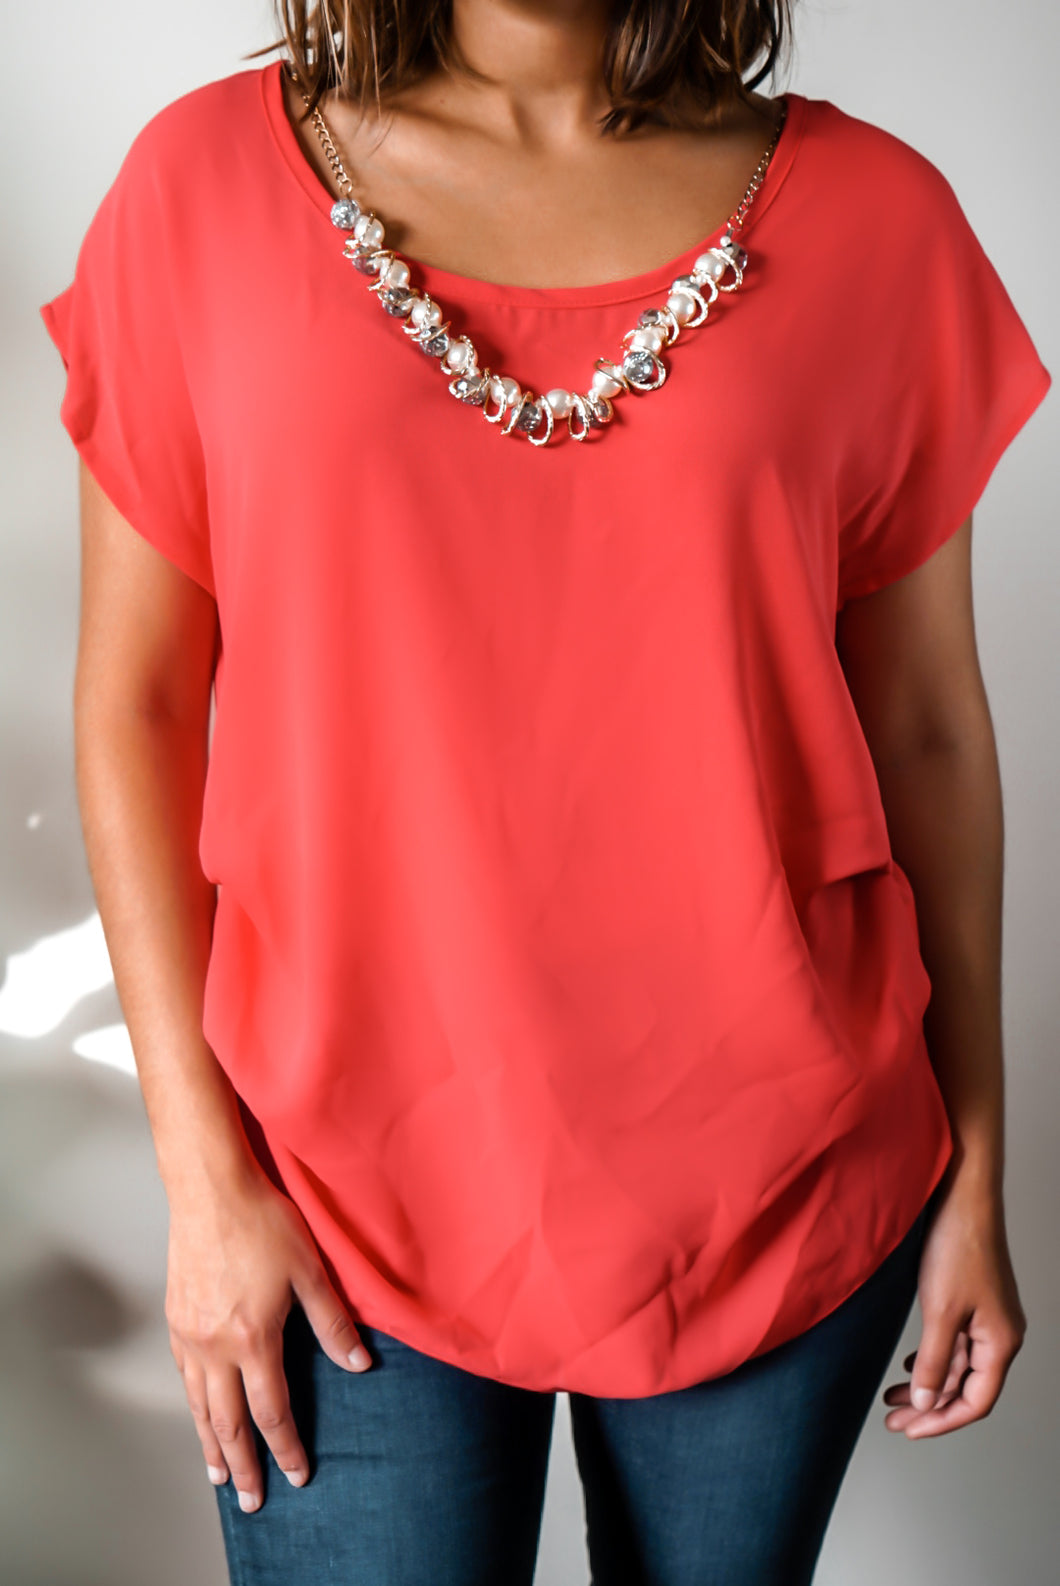 Red Hot Pearl Necklace Top